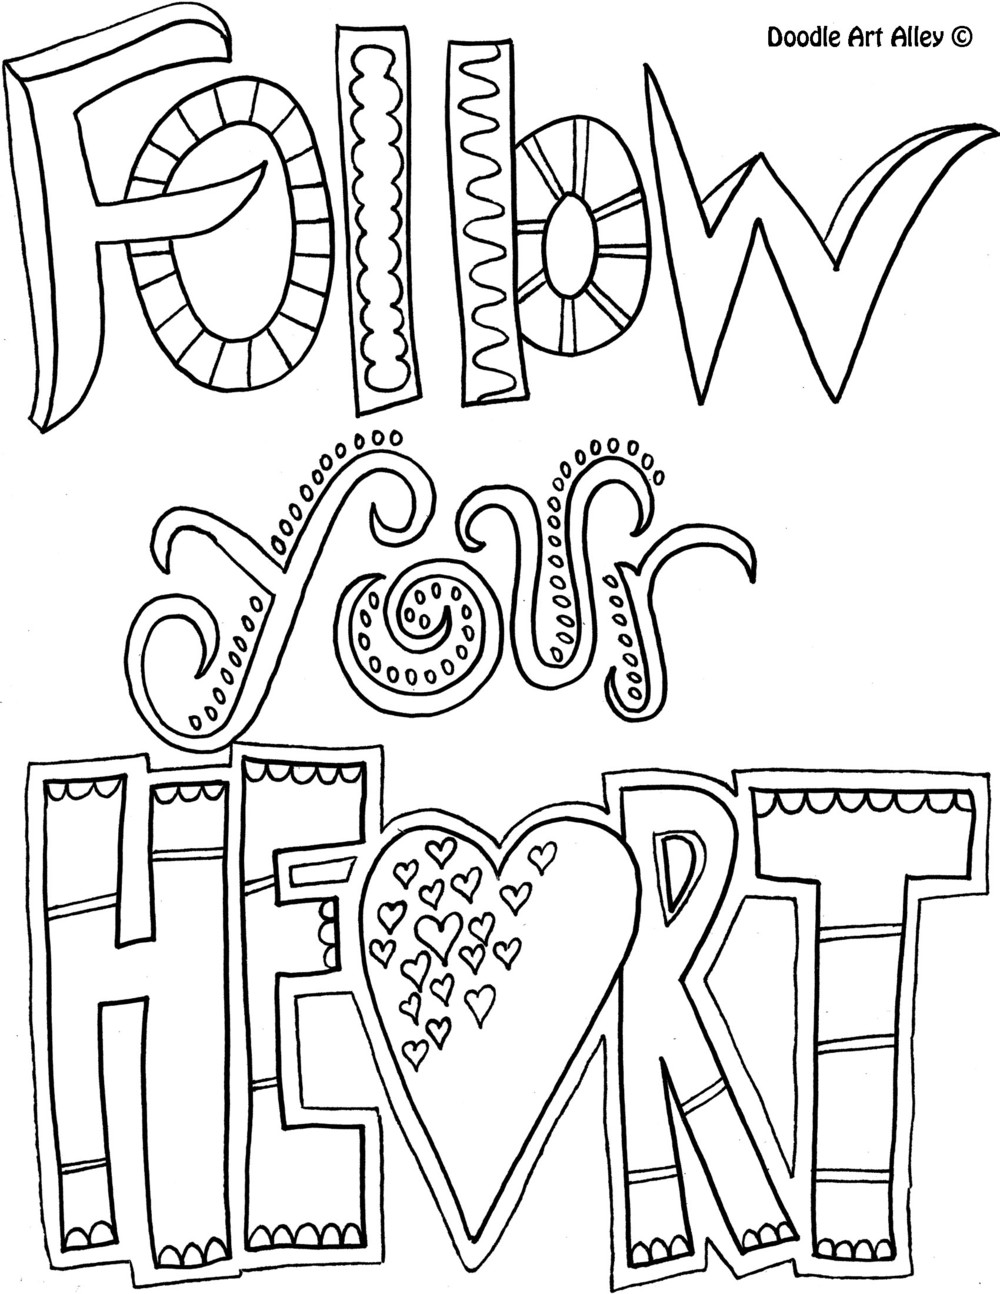 positive quotes coloring pages become a coloring book enthusiast with doodle art alley